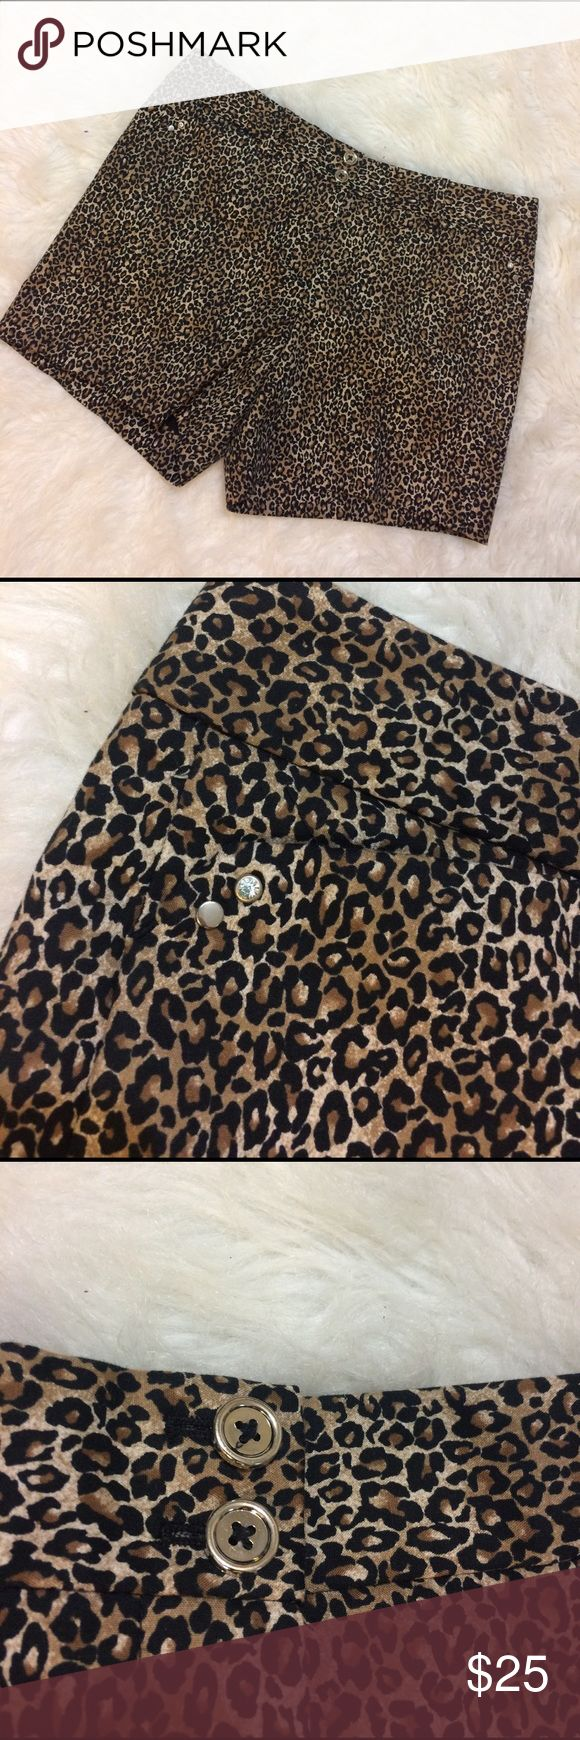 WHBM Cheetah Shorts w rhinestone accents So fierce! Little cheetah shorts by White House Black Market with studs and rhinestones on the pockets.  Size 4  excellent condition White House Black Market Shorts